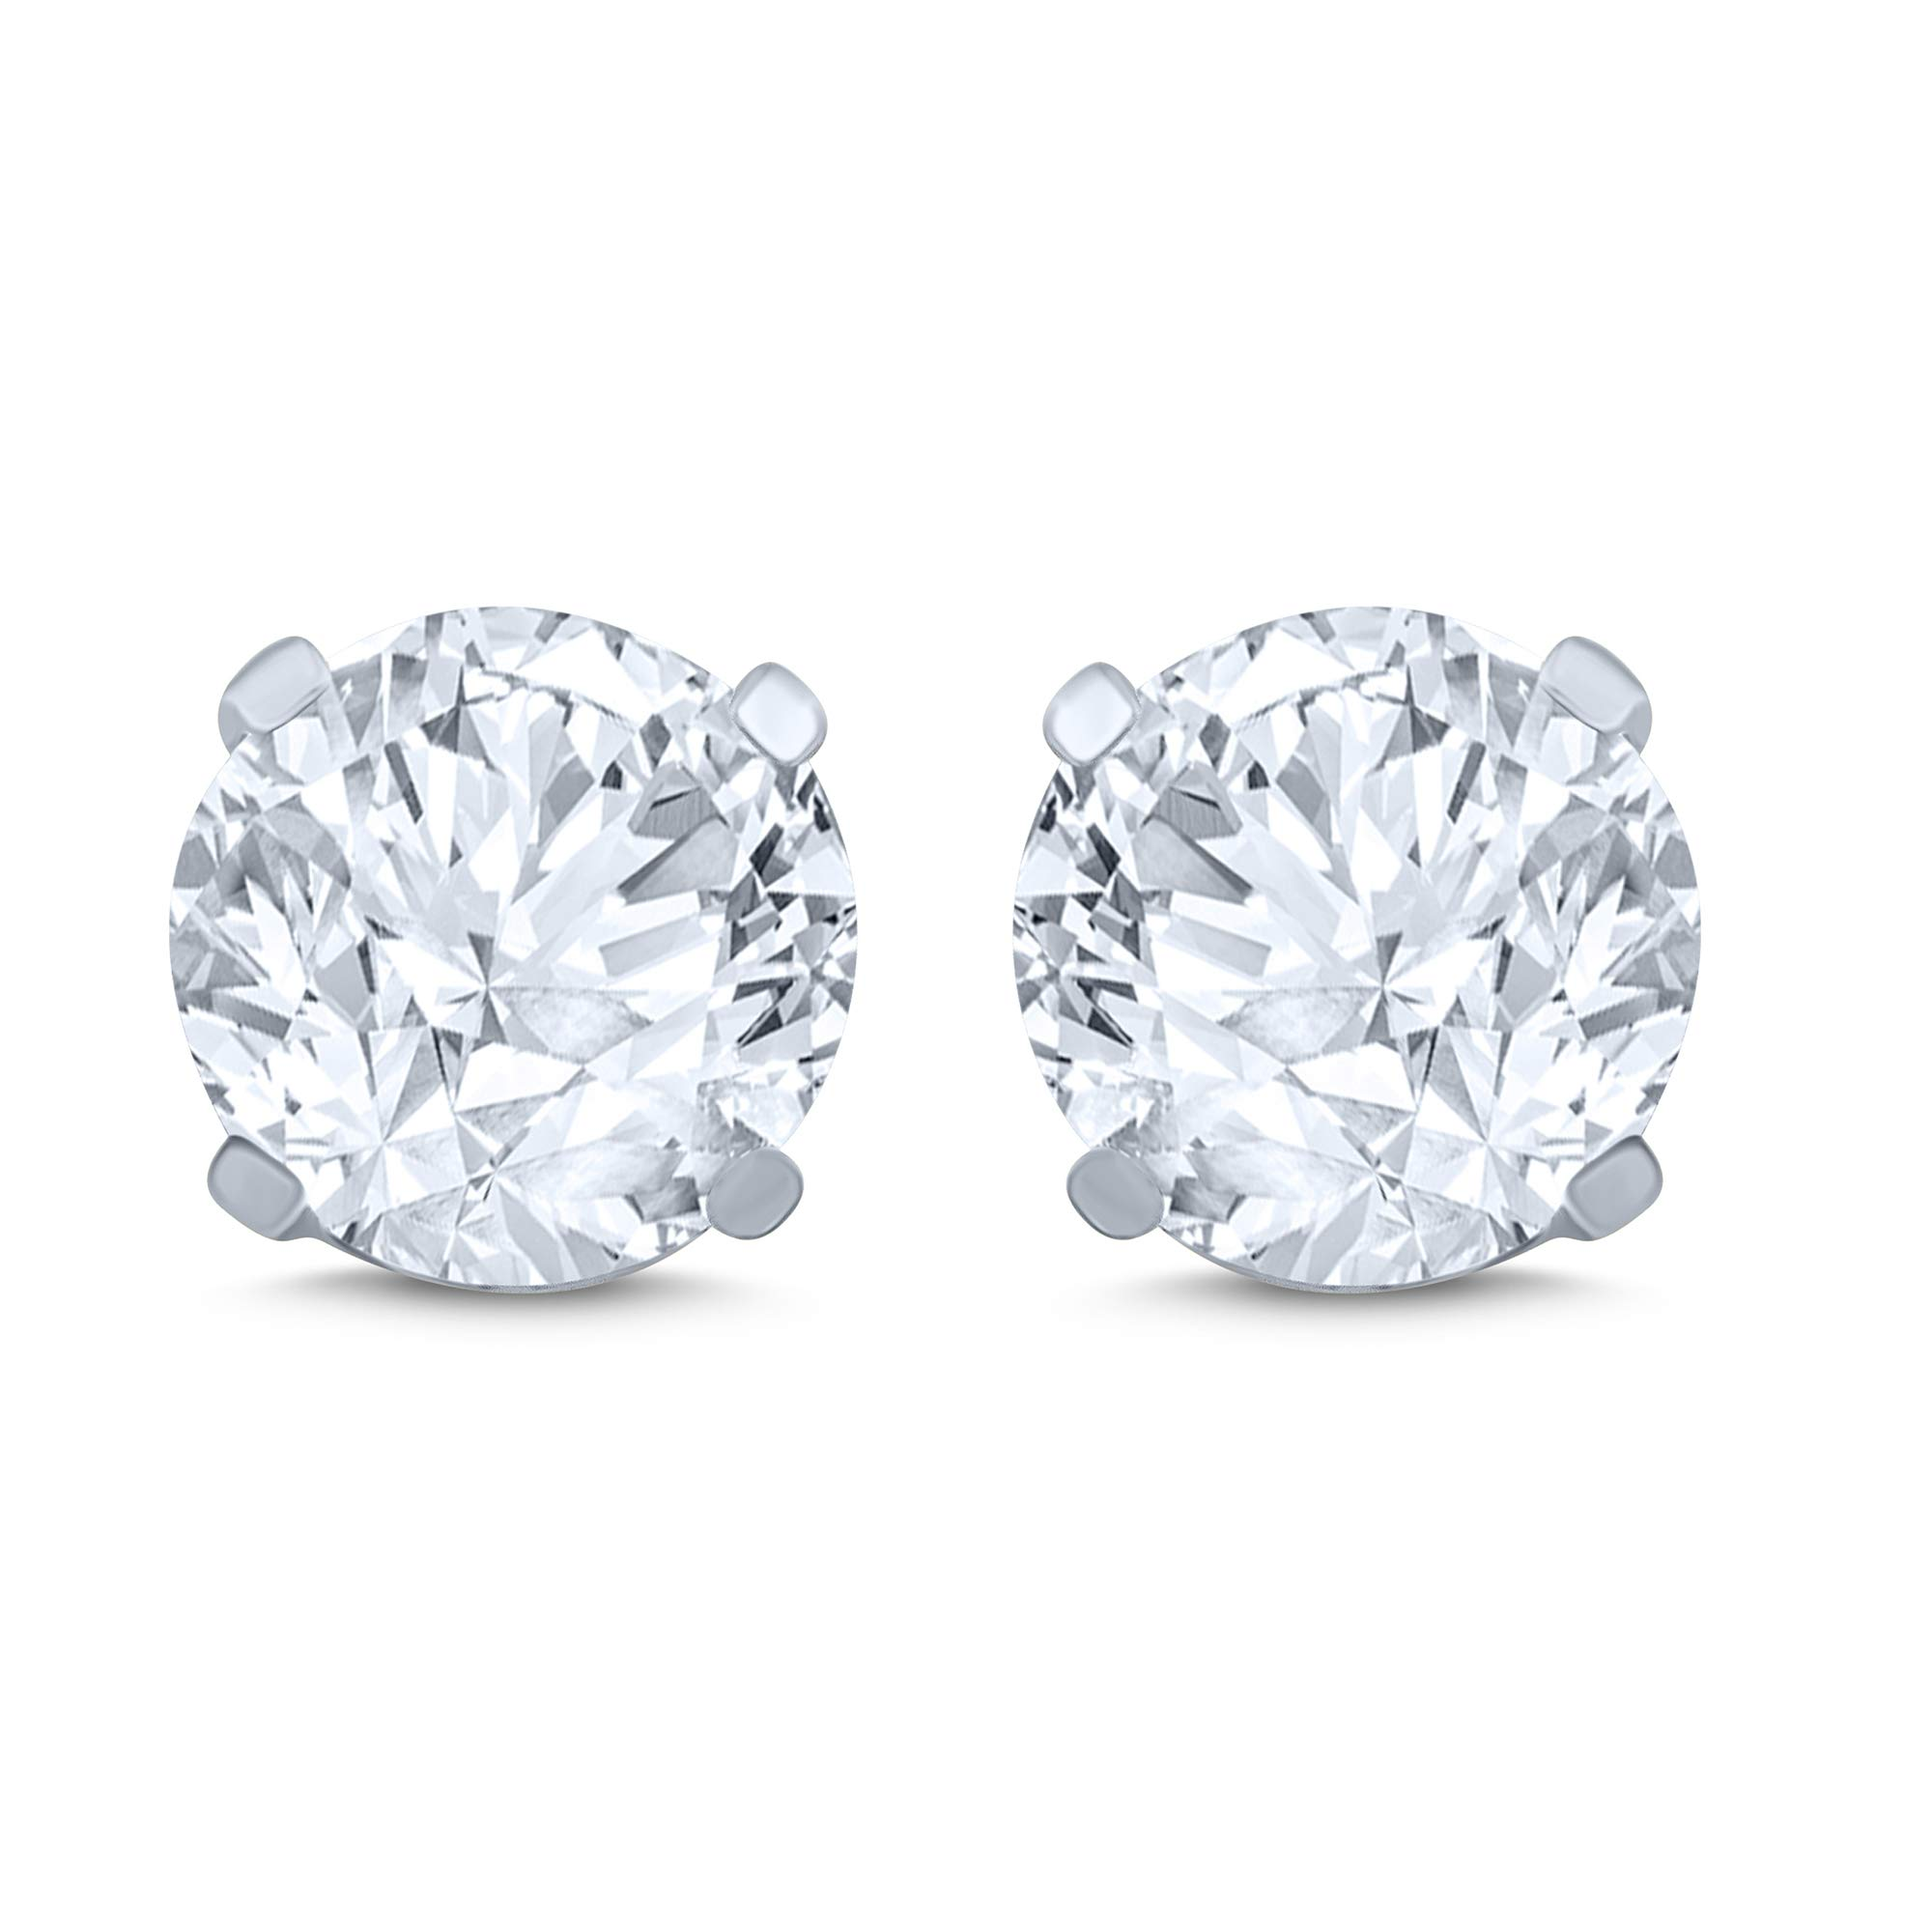 14k White Gold Diamond Stud Earring (1/4 cttw, J-K Color, I2I3 Clarity) by Cynergy